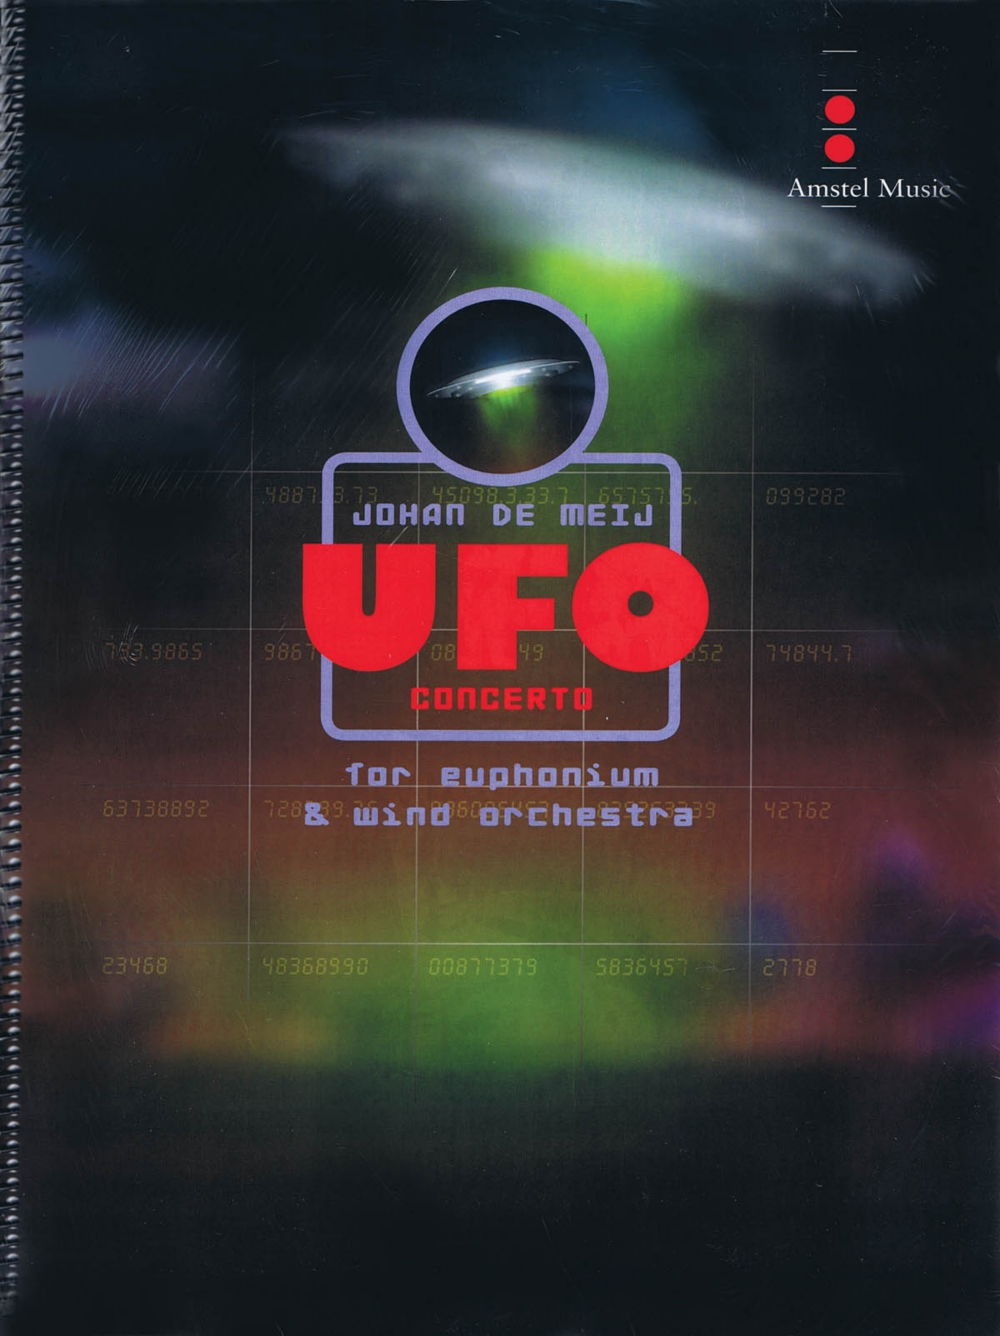 Amstel Music UFO Concerto (for Euphonium and Wind Orchestra) (Score Only) Concert Band... by Amstel Music